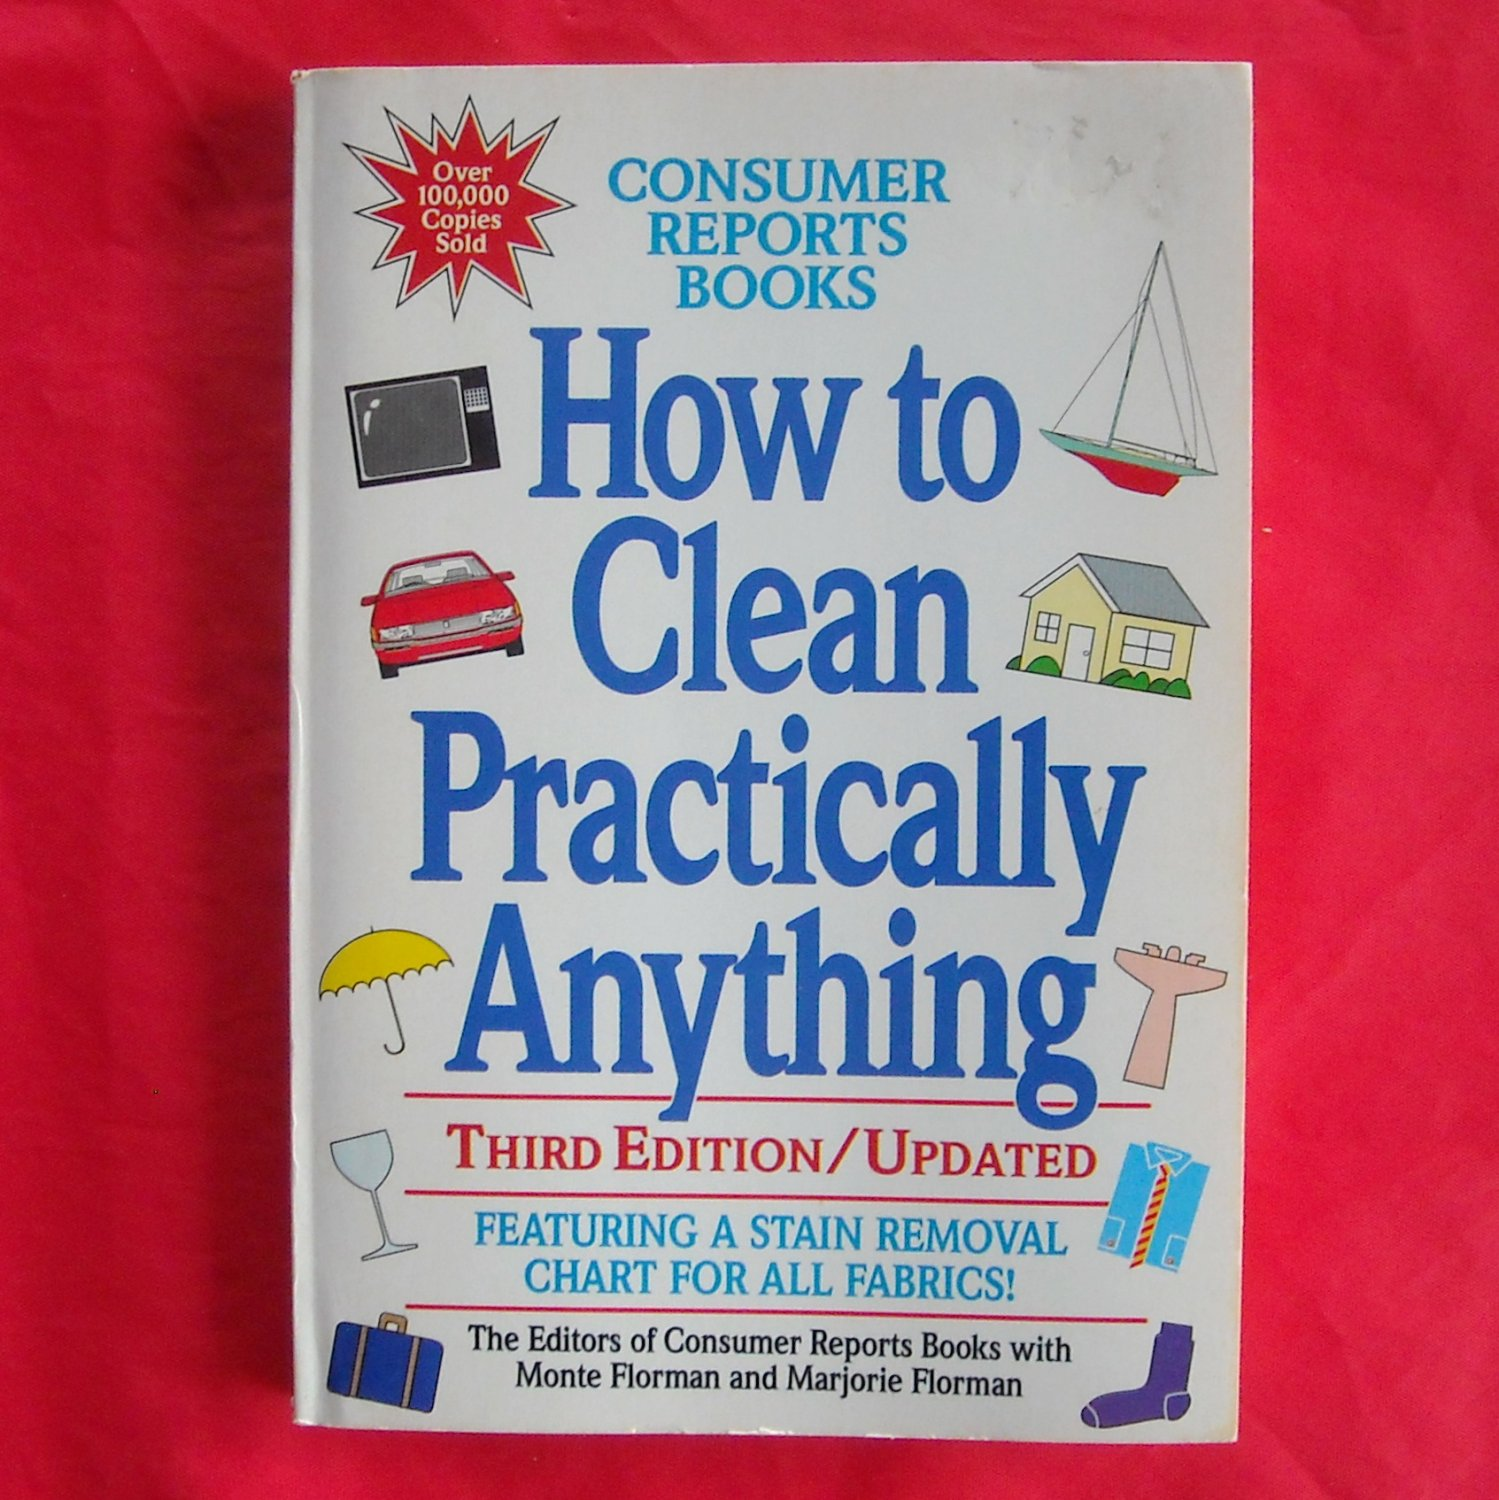 Consumer Reports Book How to clean practically anything ISBN 089043753X